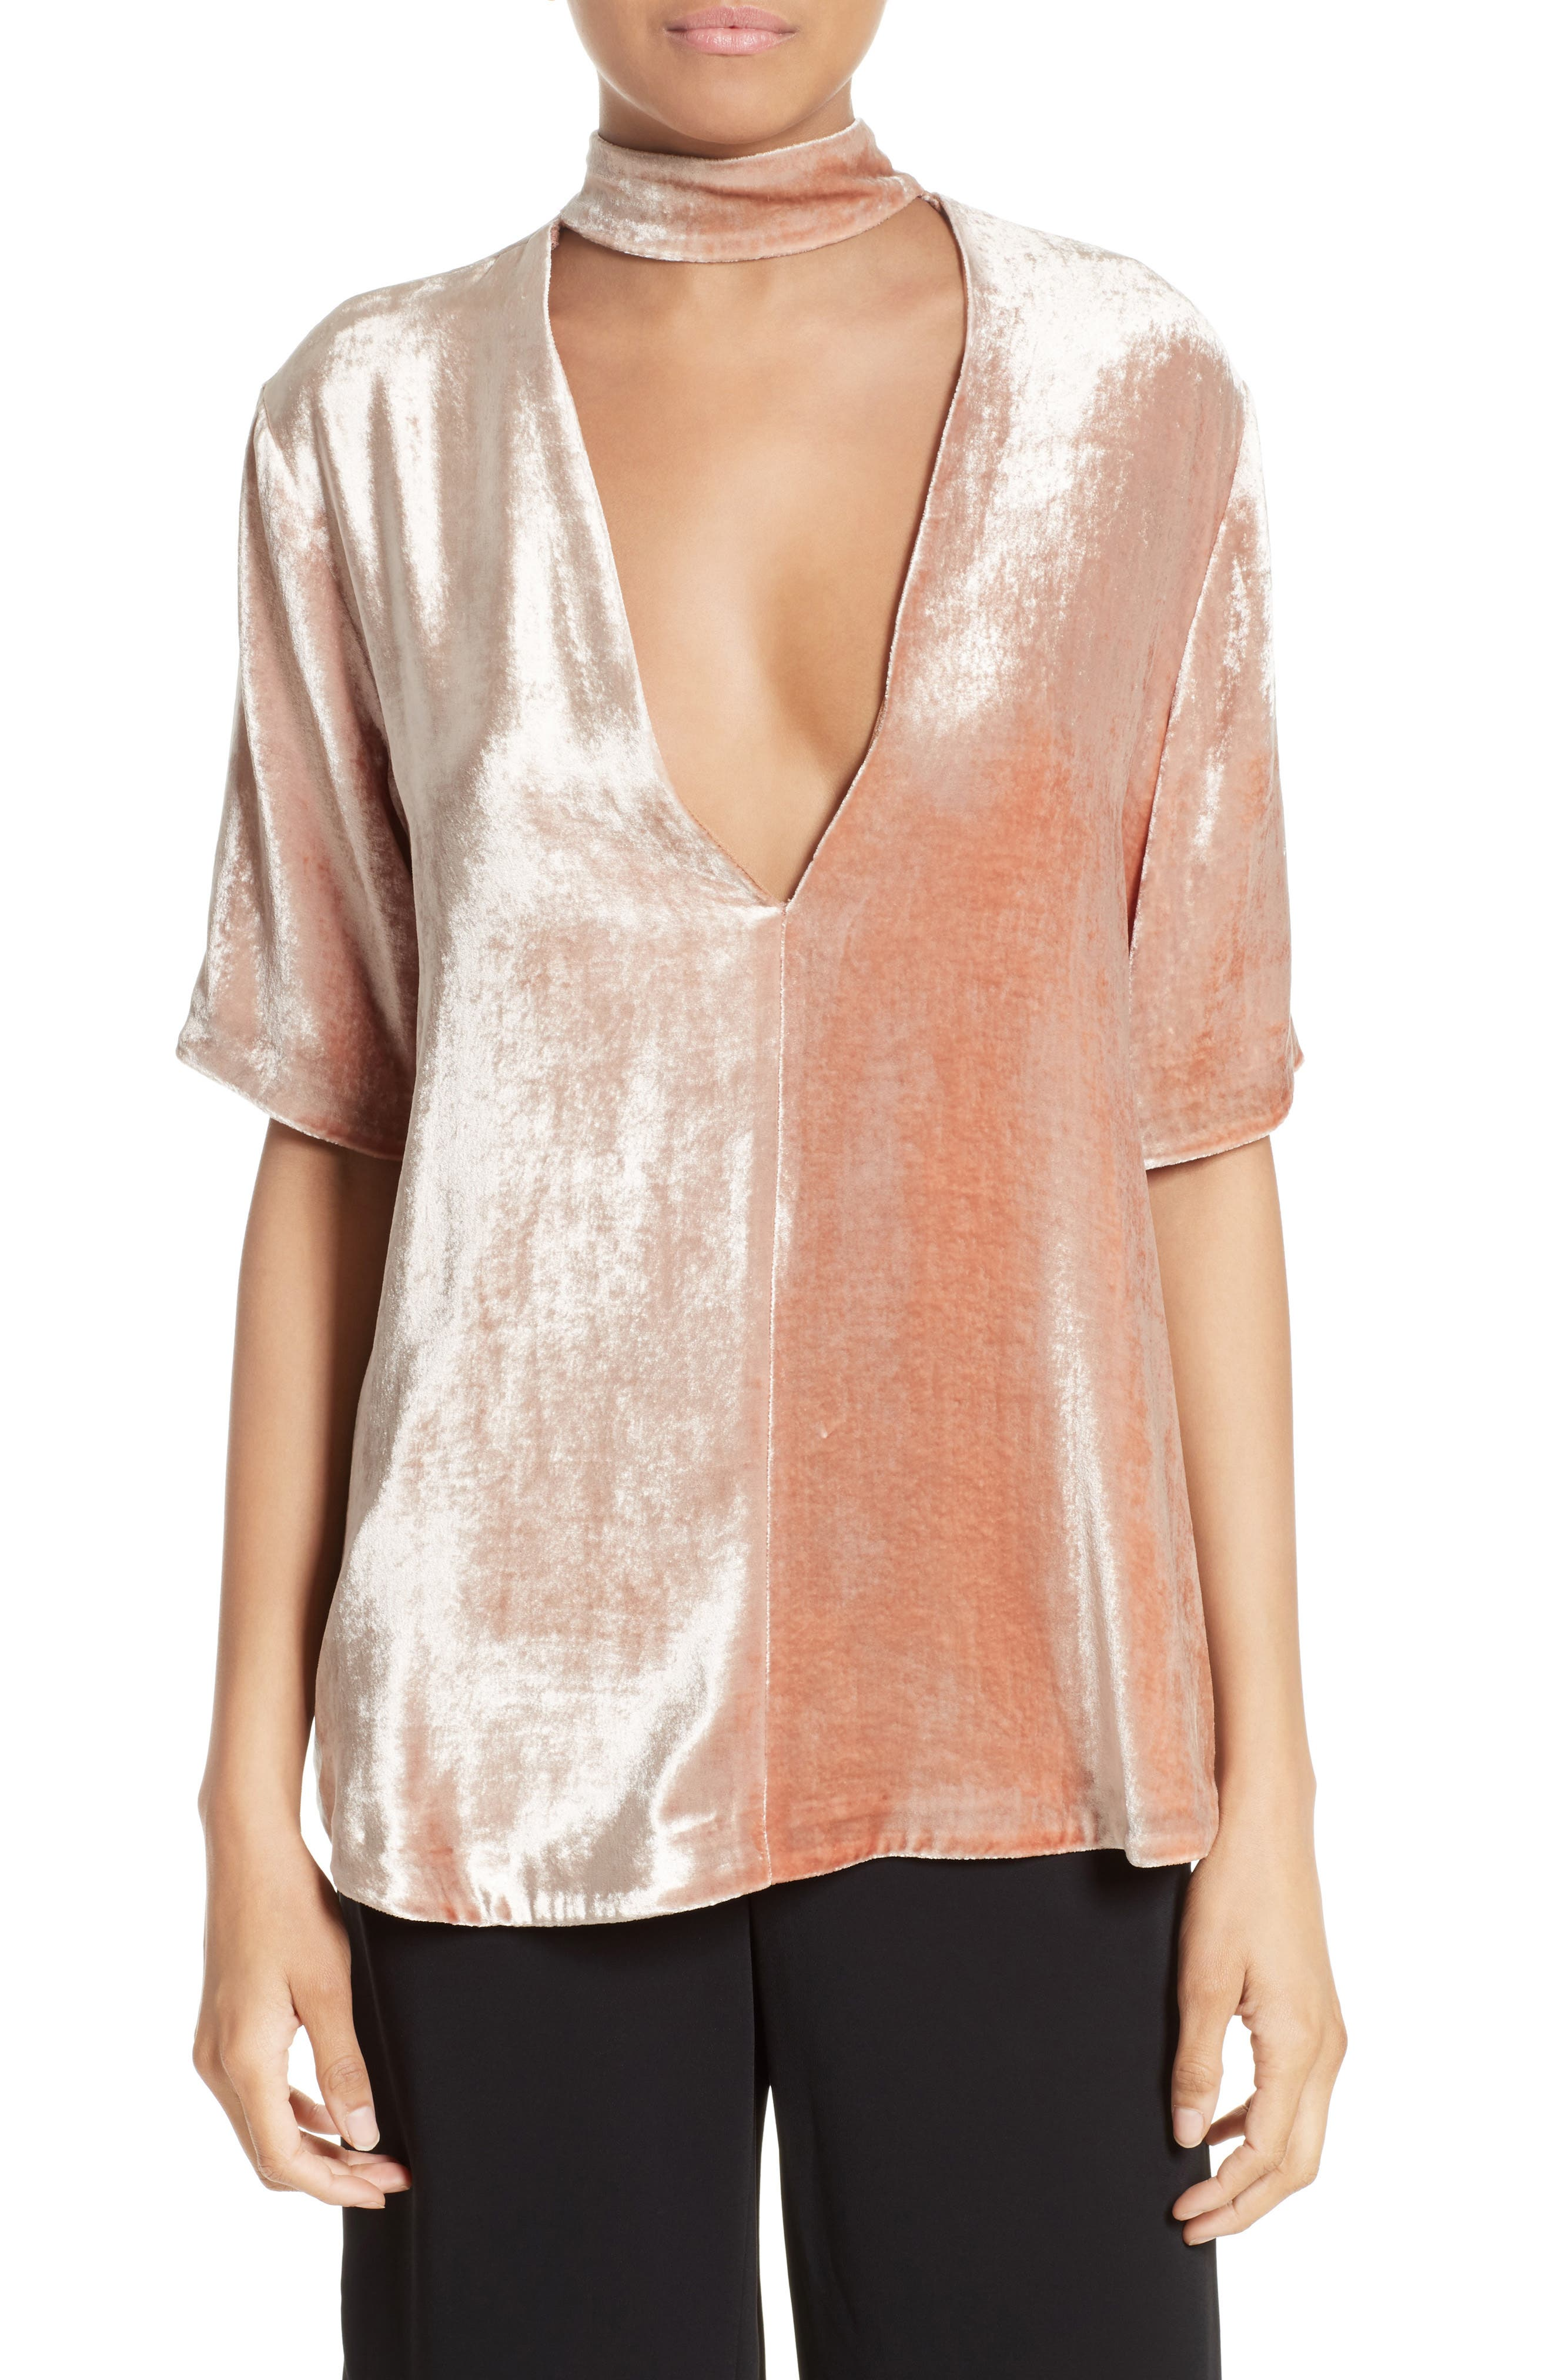 Blaise Velvet Choker Top,                         Main,                         color, Pink